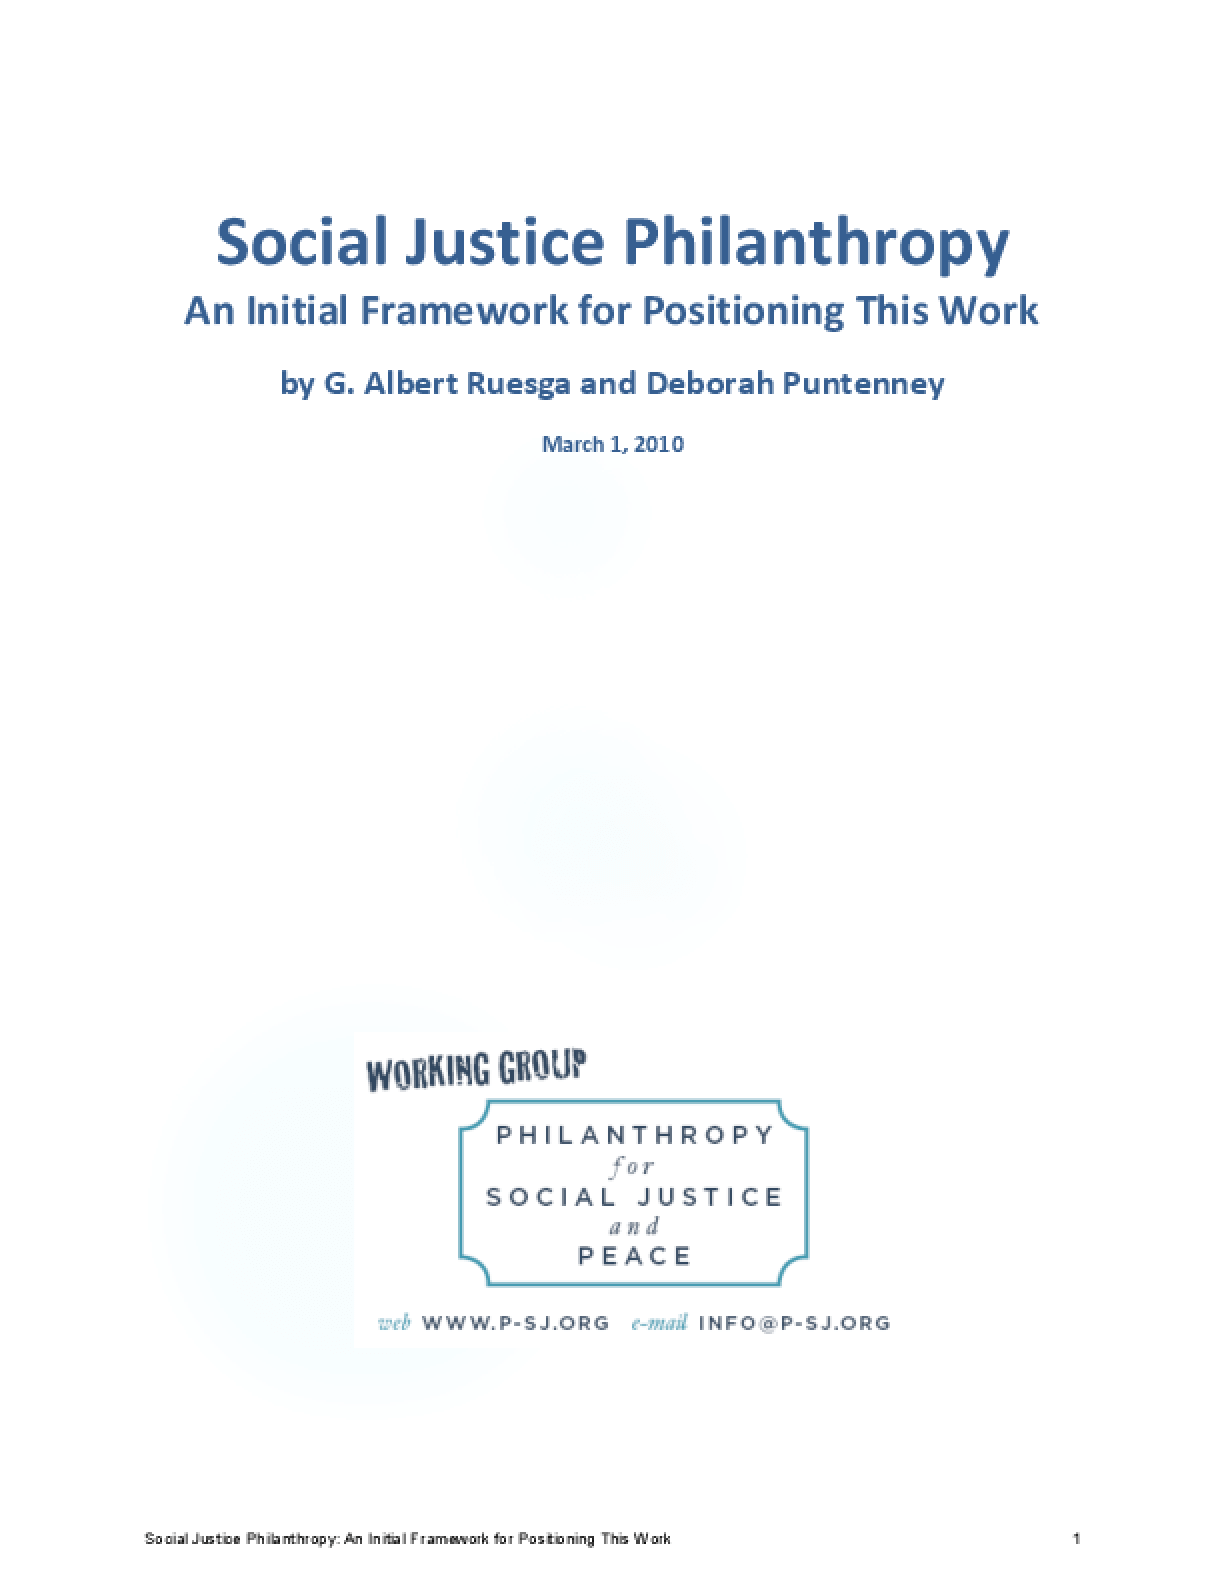 Social Justice Philanthropy: An Initial Framework for Positioning This Work